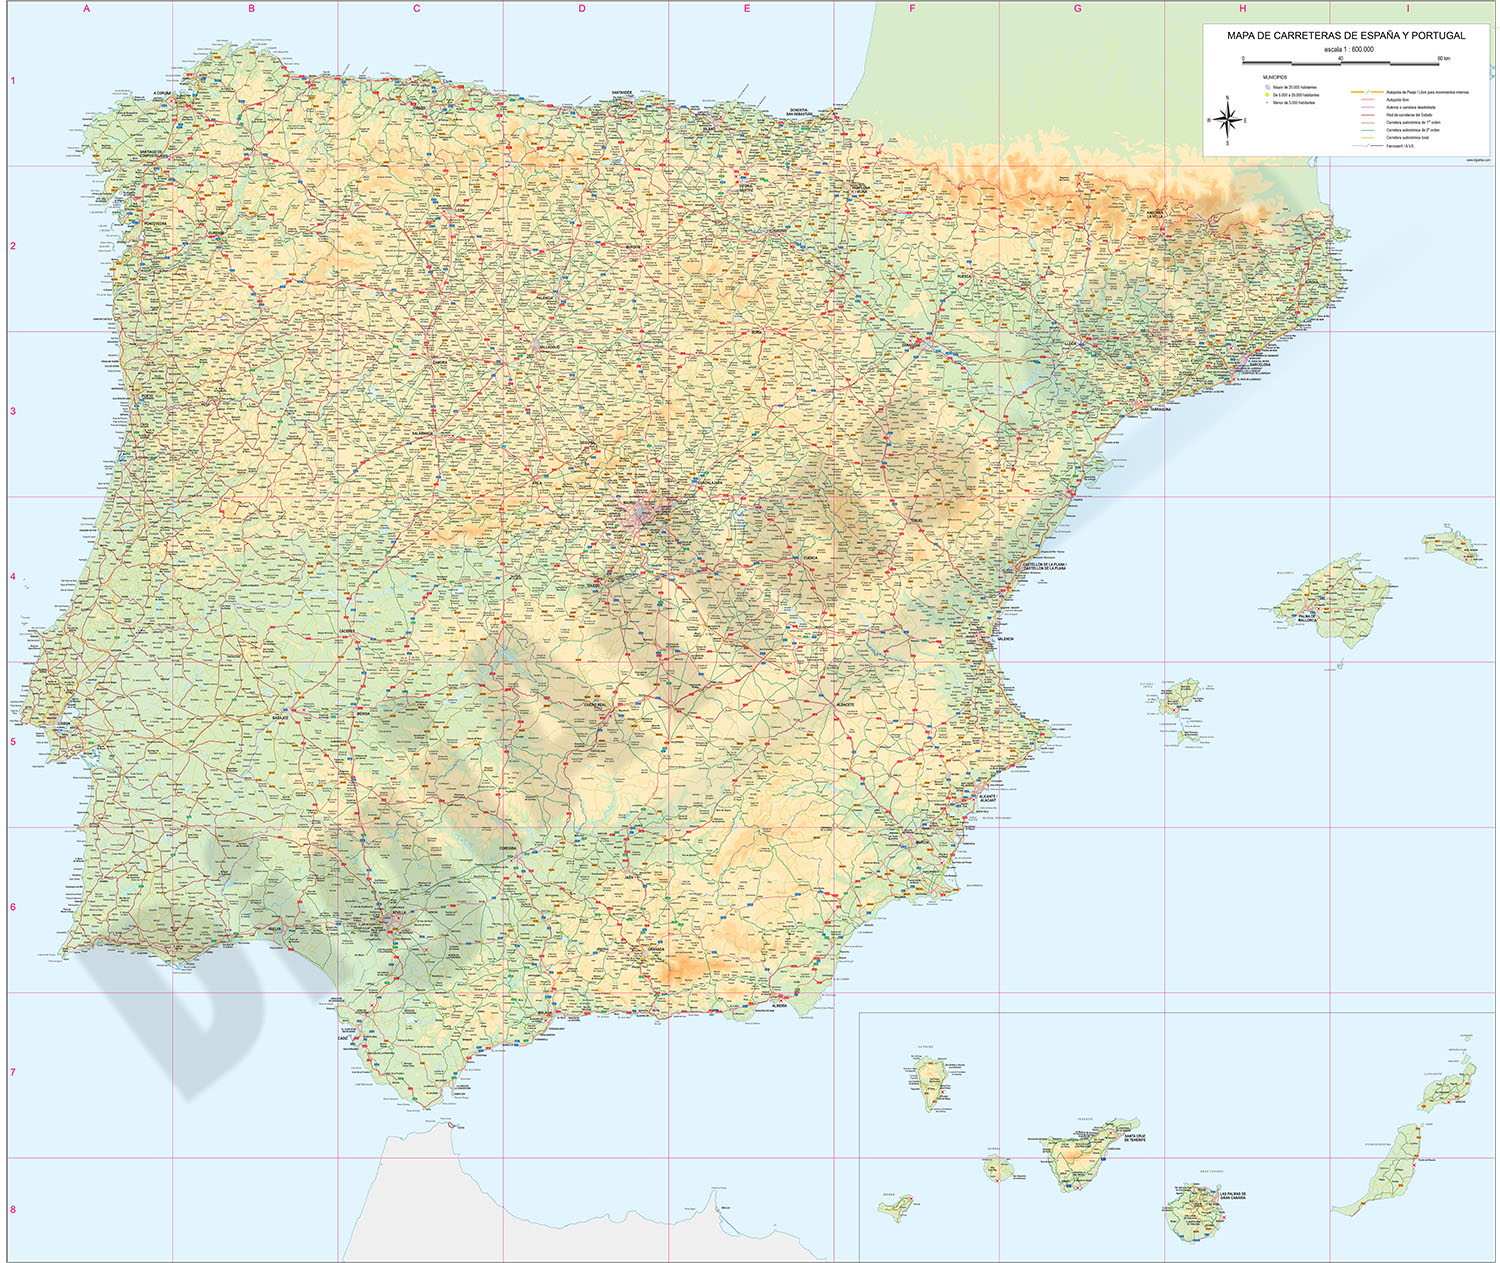 Roadmap of Spain and Portugal